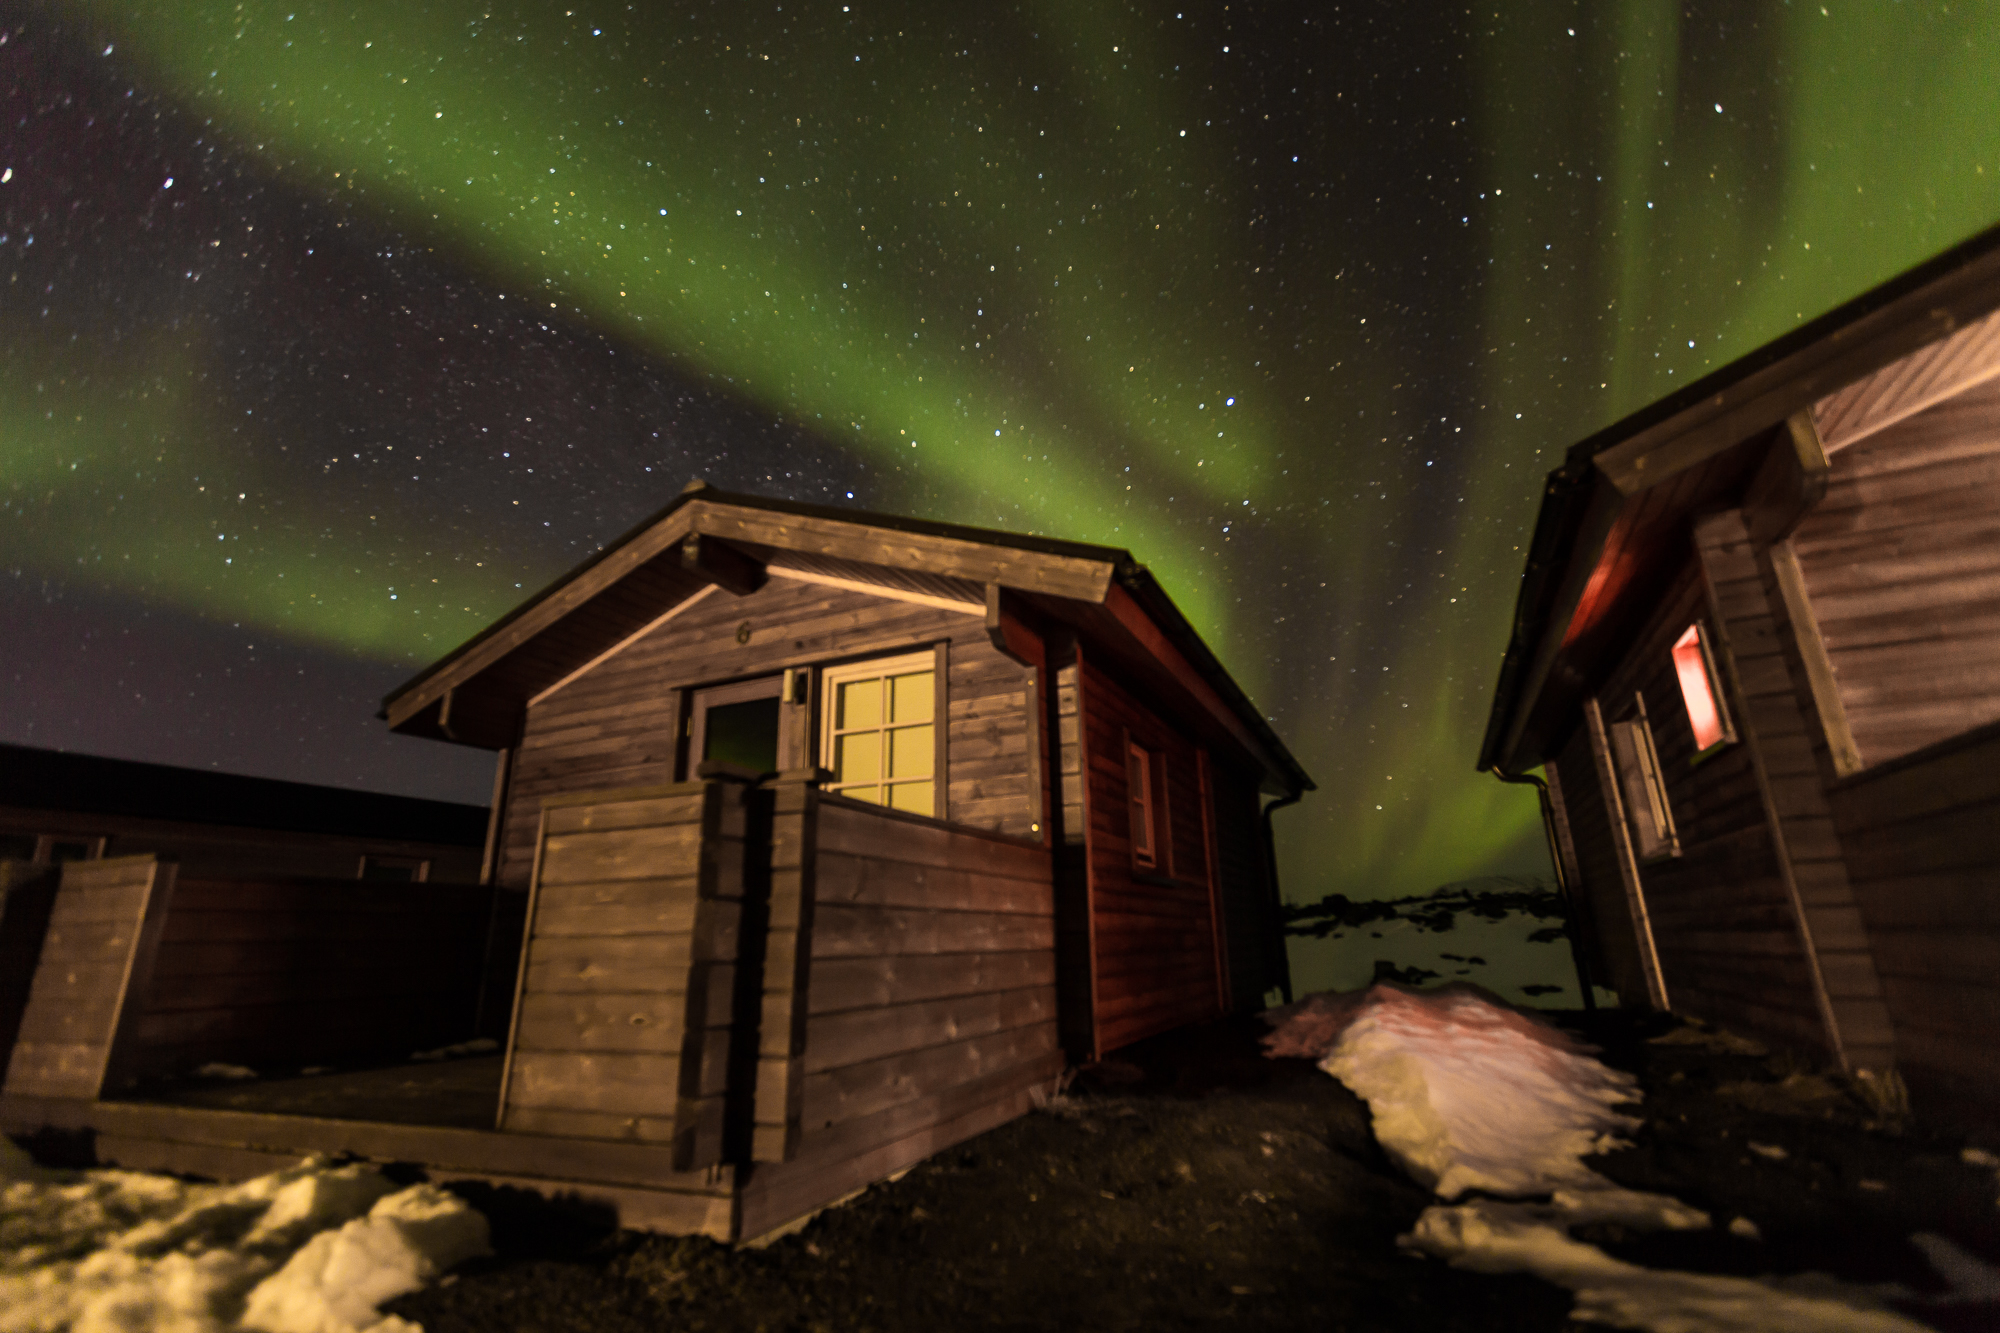 Northern lights getting brighter throughout the night in Myvatn